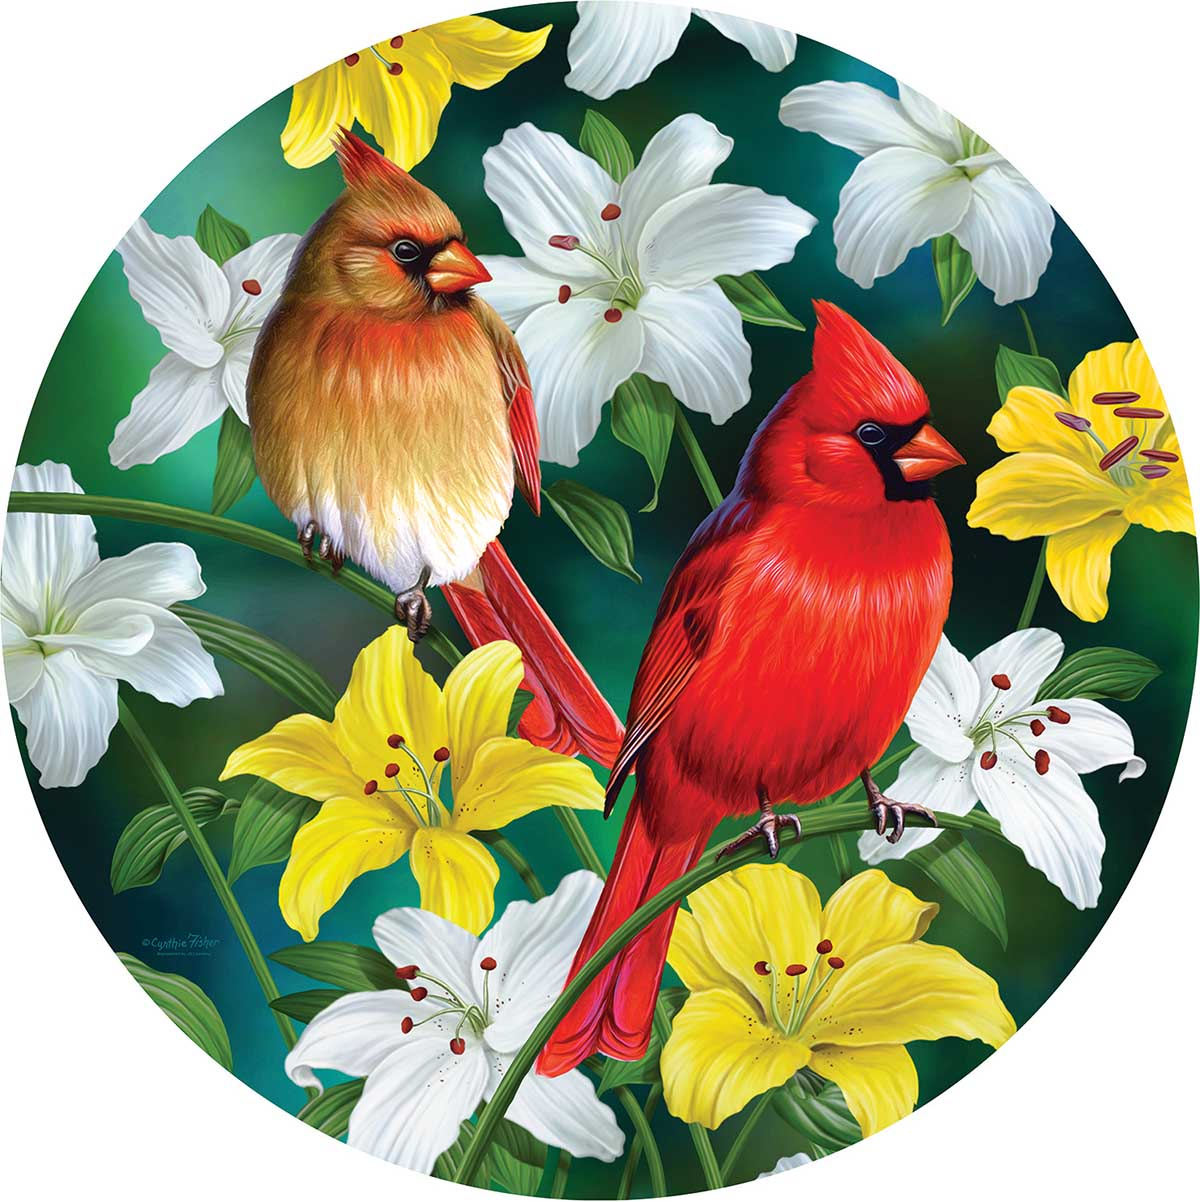 Cardinals in the Round Birds Round Jigsaw Puzzle